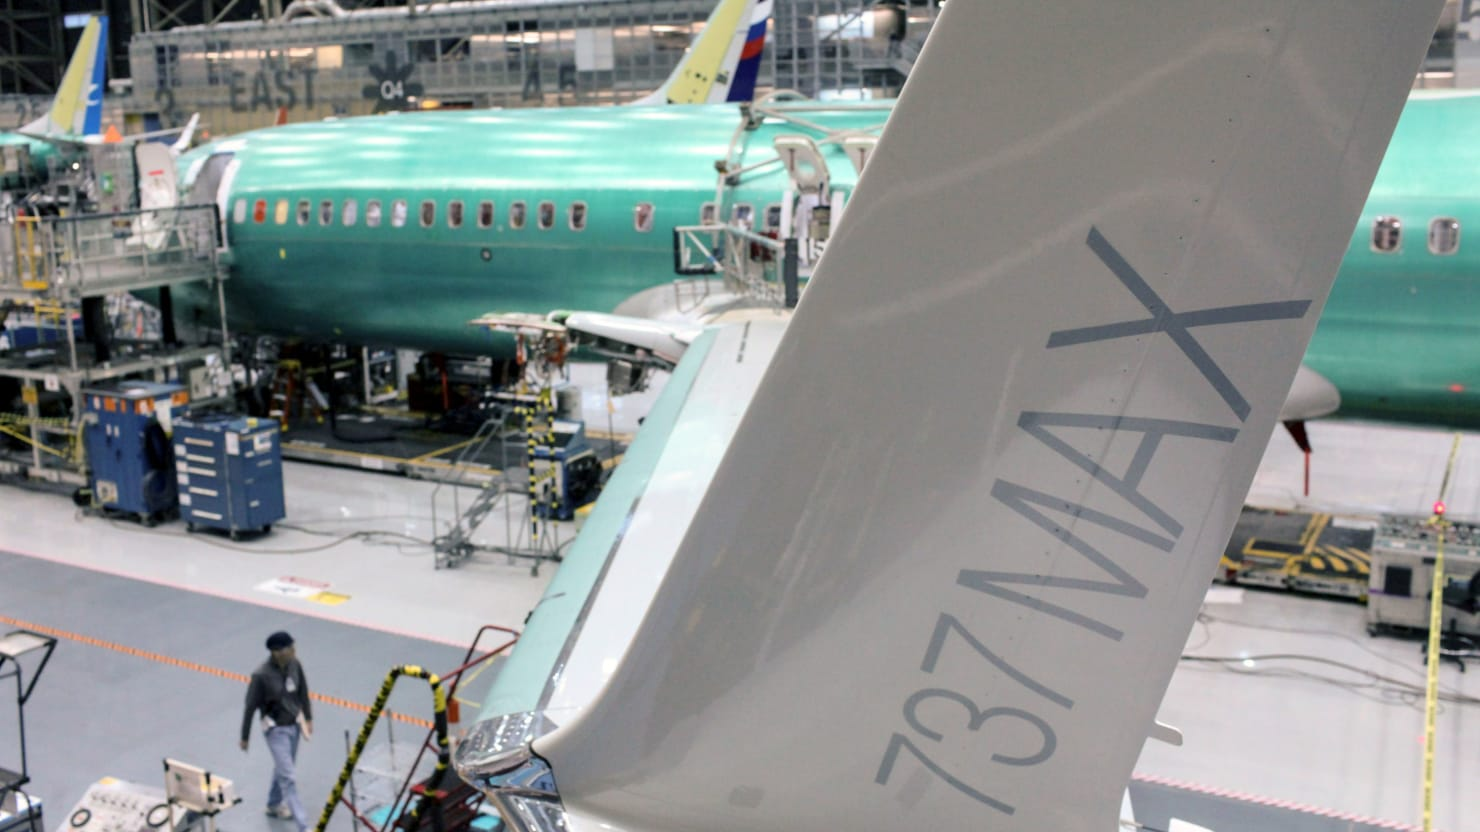 Boeing Accused of Fast Tracking Aircraft Self-Certification With FAA Permission